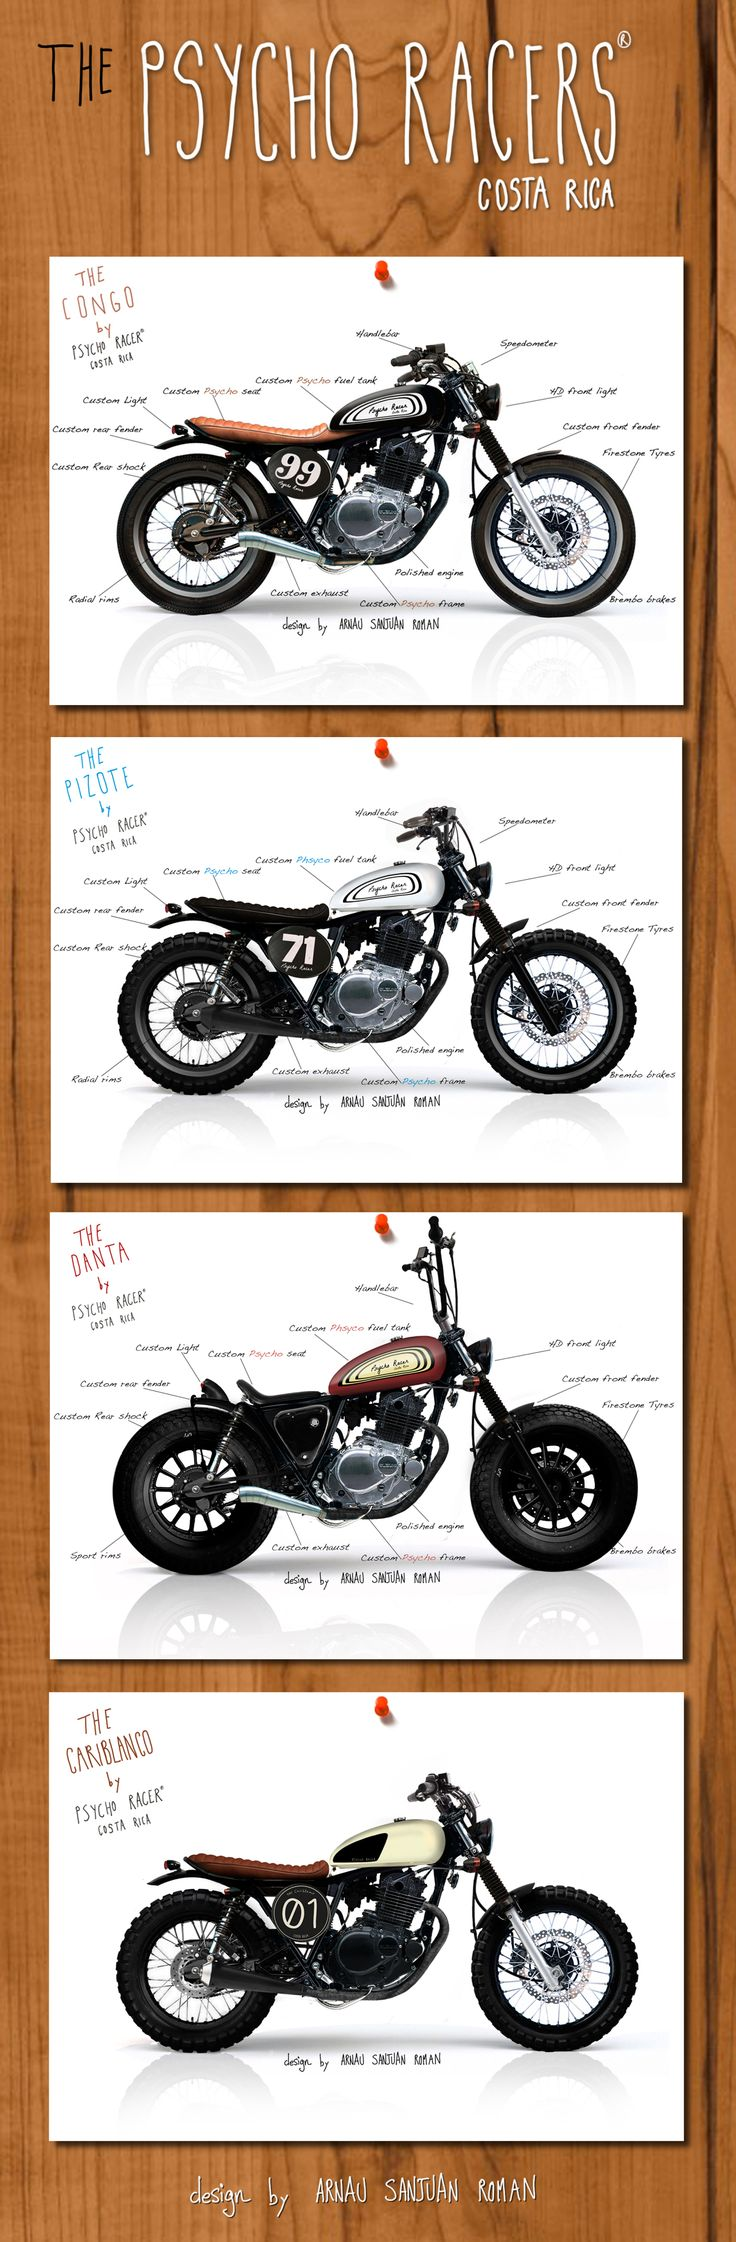 50 Best Motorbike Design Images On Pinterest Custom Motorcycles Sr500e Yamaha Motorcycle Front Disc Brake Caliper Diagram And Parts Psycho Racer The Cariblanco Suzuki Gn 125 Suzukign 250 Story Beautiful Machines With Character Style